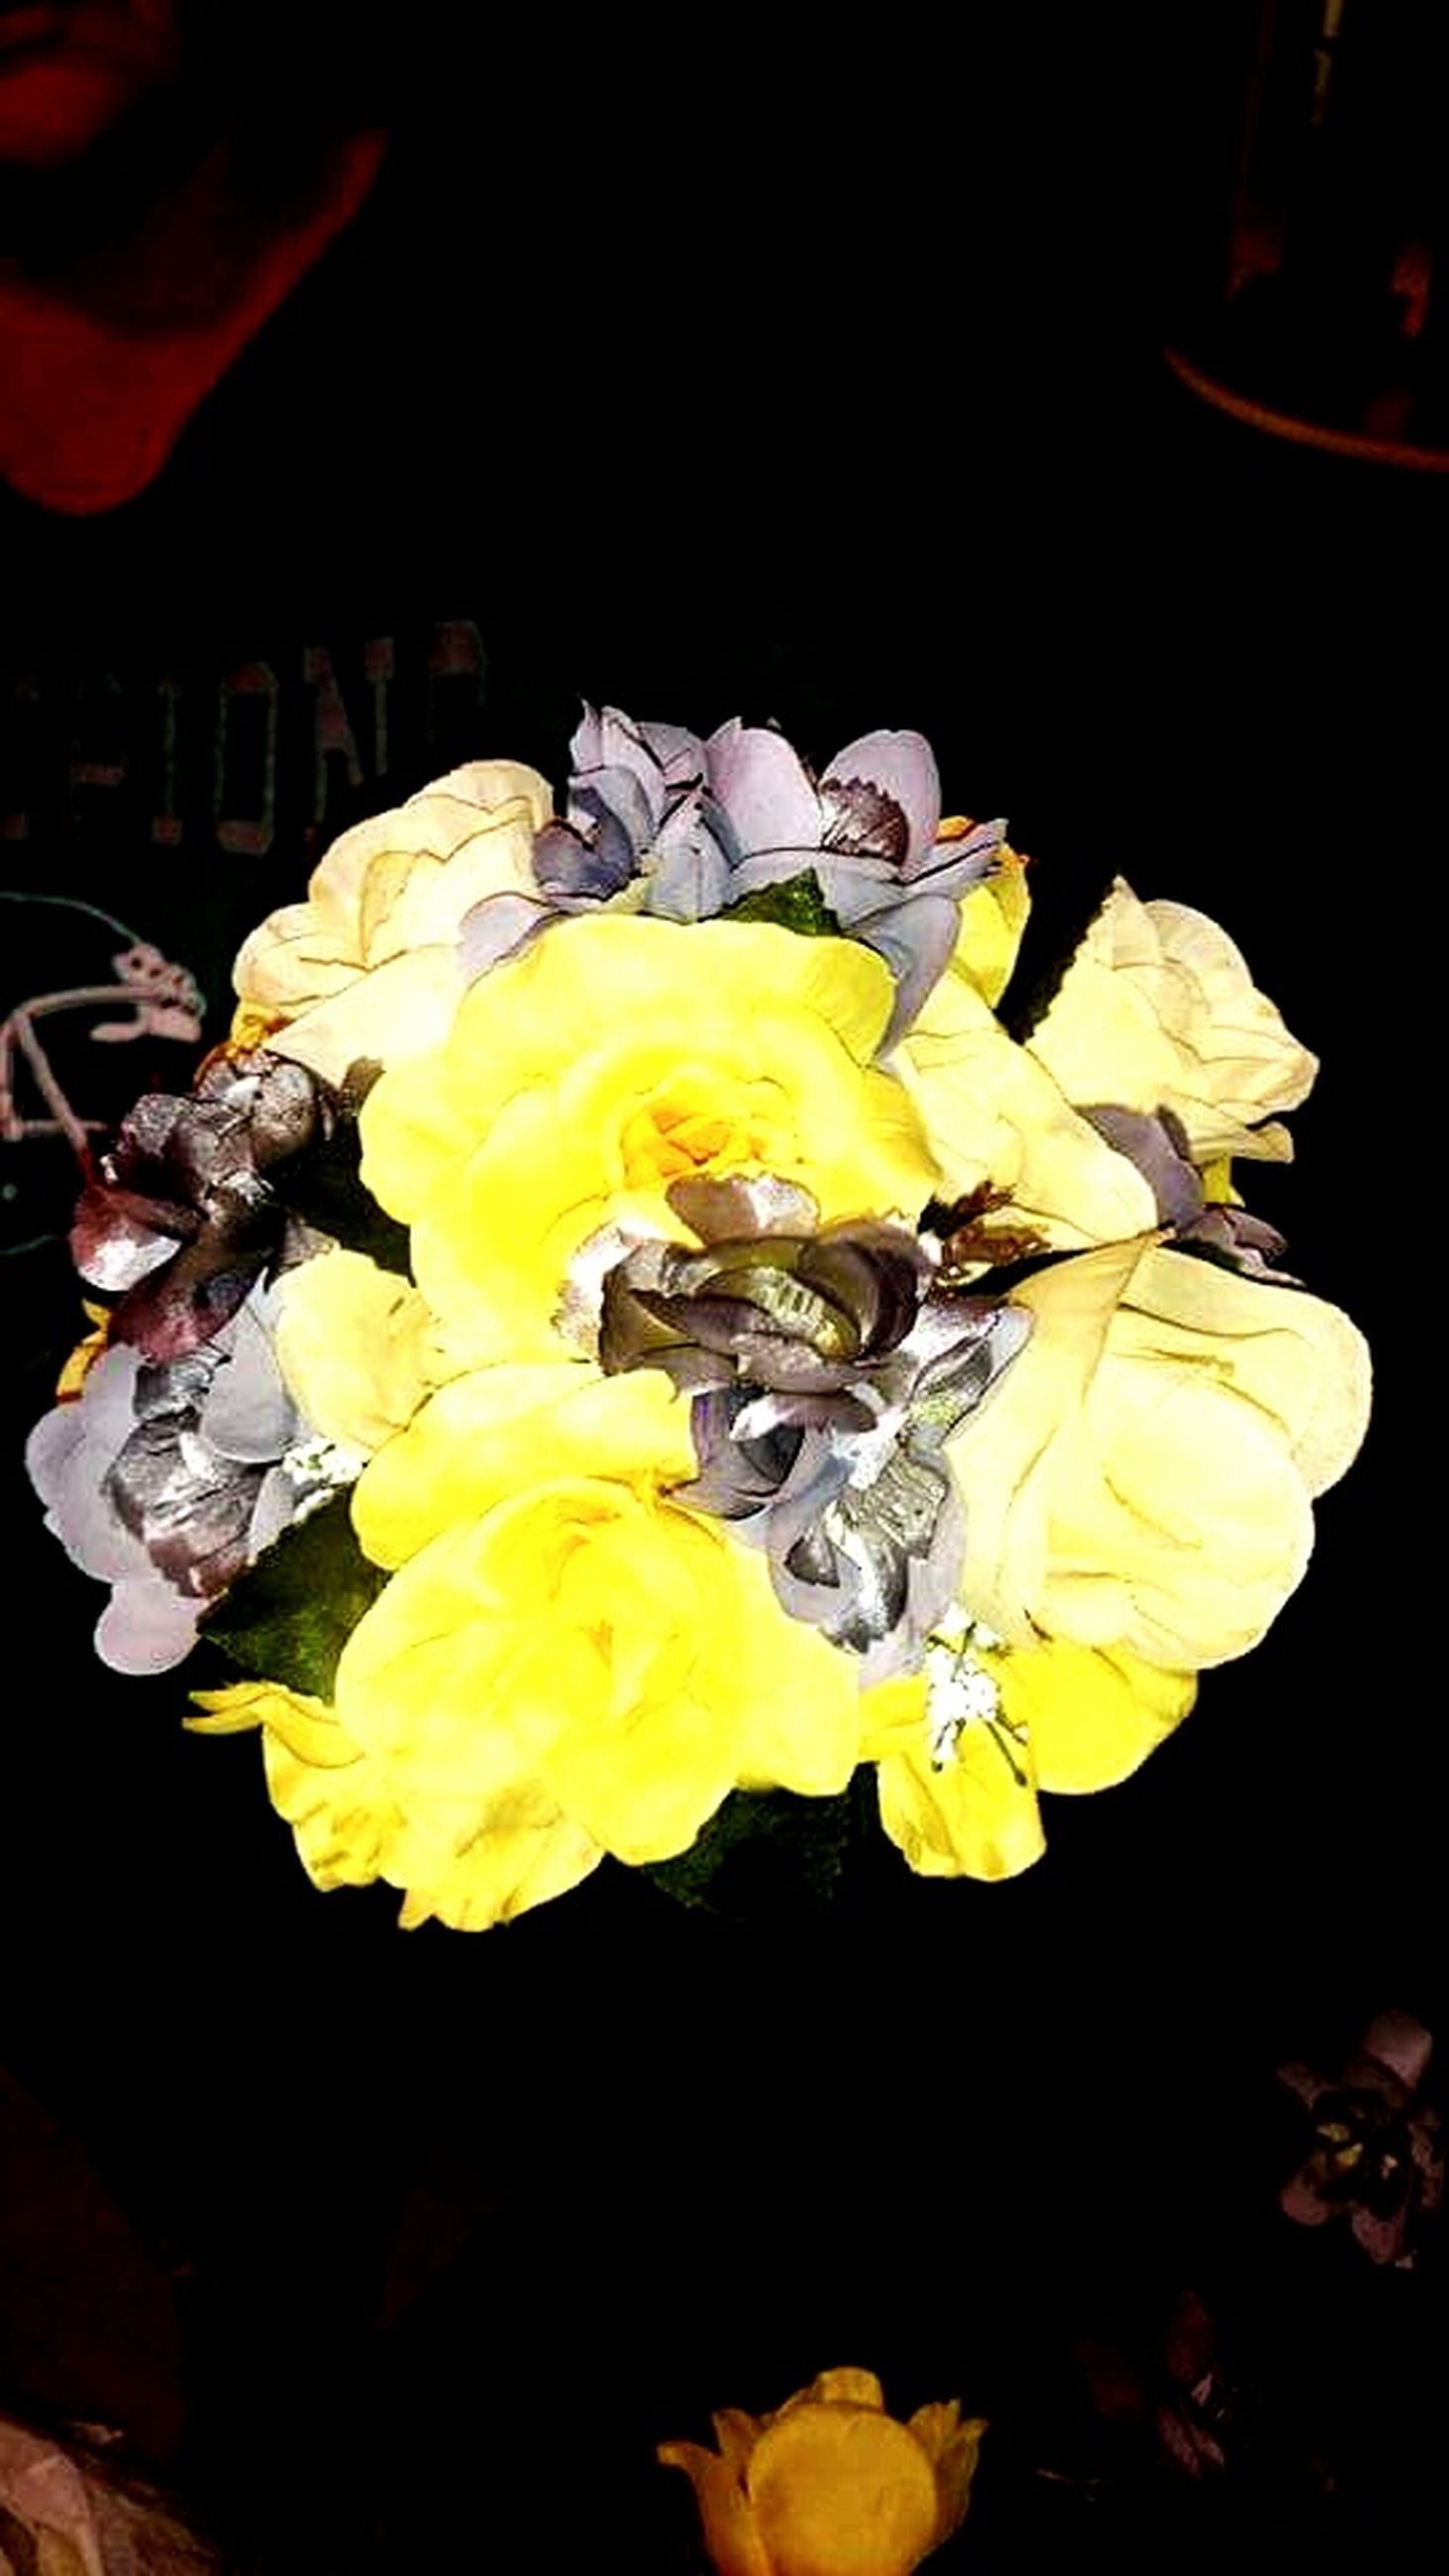 flower, yellow, petal, indoors, freshness, black background, close-up, fragility, studio shot, flower head, high angle view, still life, no people, nature, table, focus on foreground, beauty in nature, vase, rose - flower, bunch of flowers